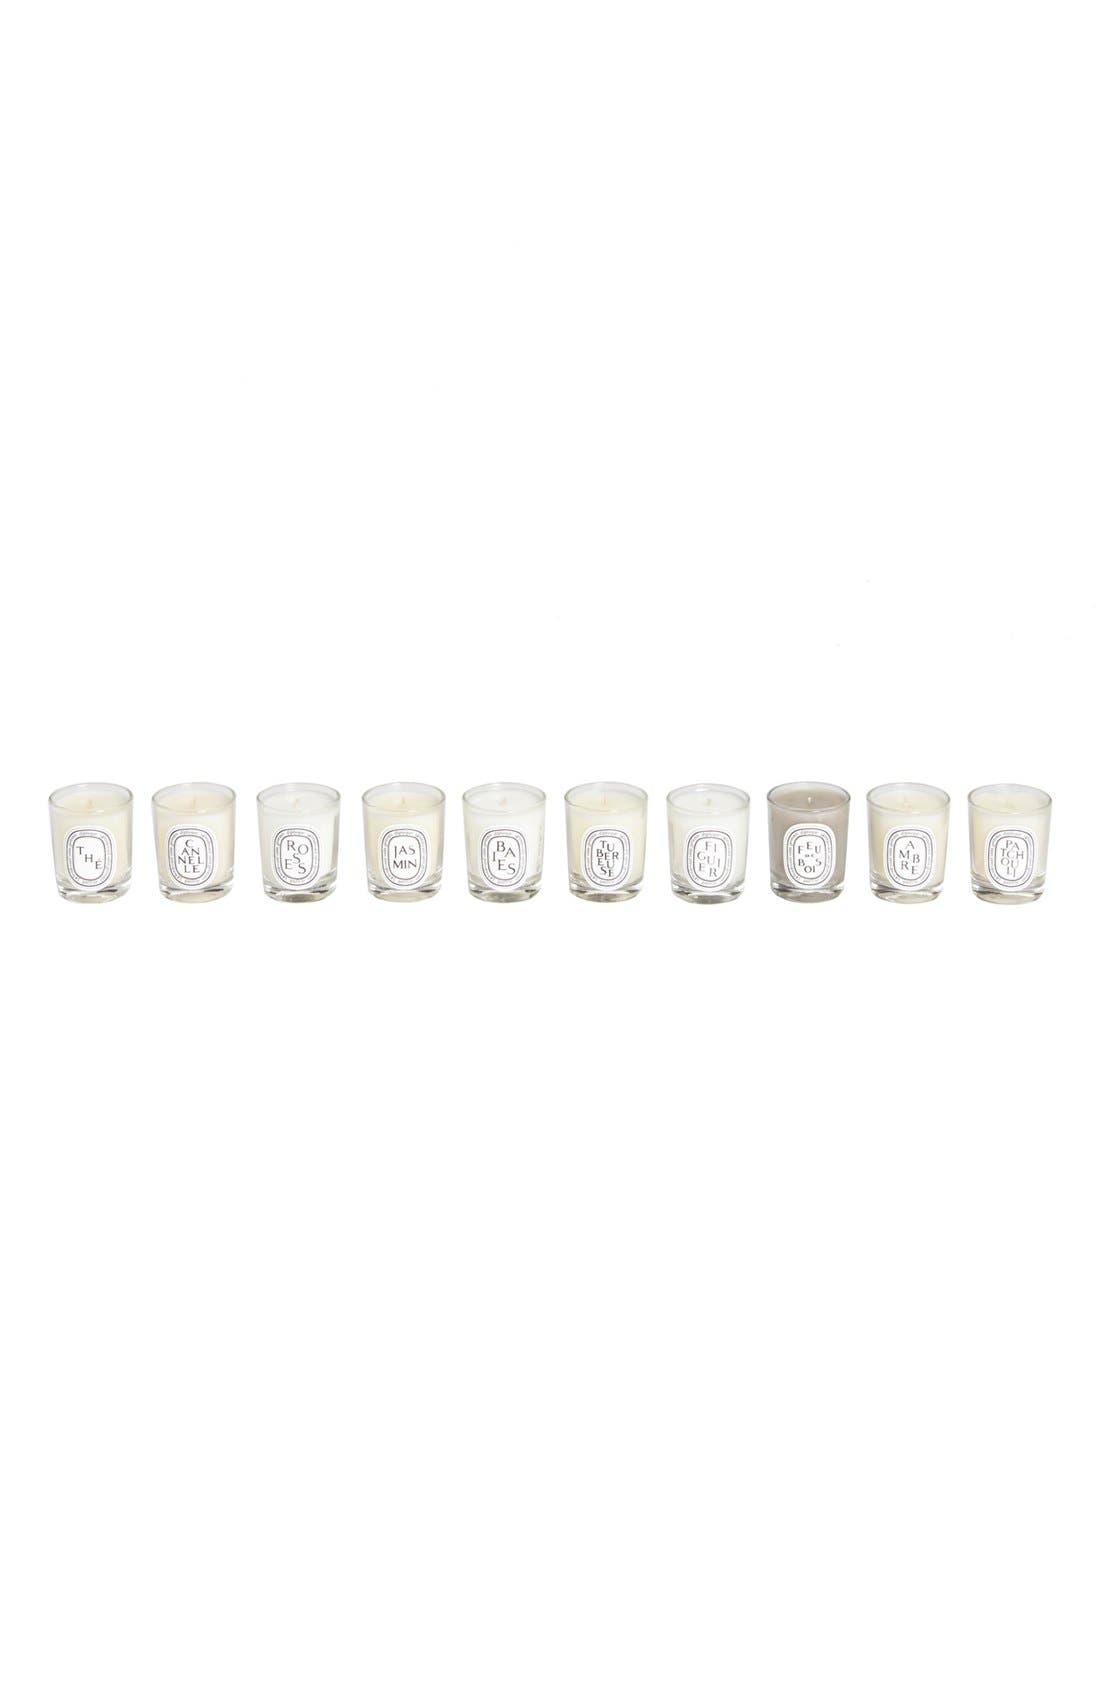 Alternate Image 3  - diptyque Candles (Set of 10) (Nordstrom Exclusive)